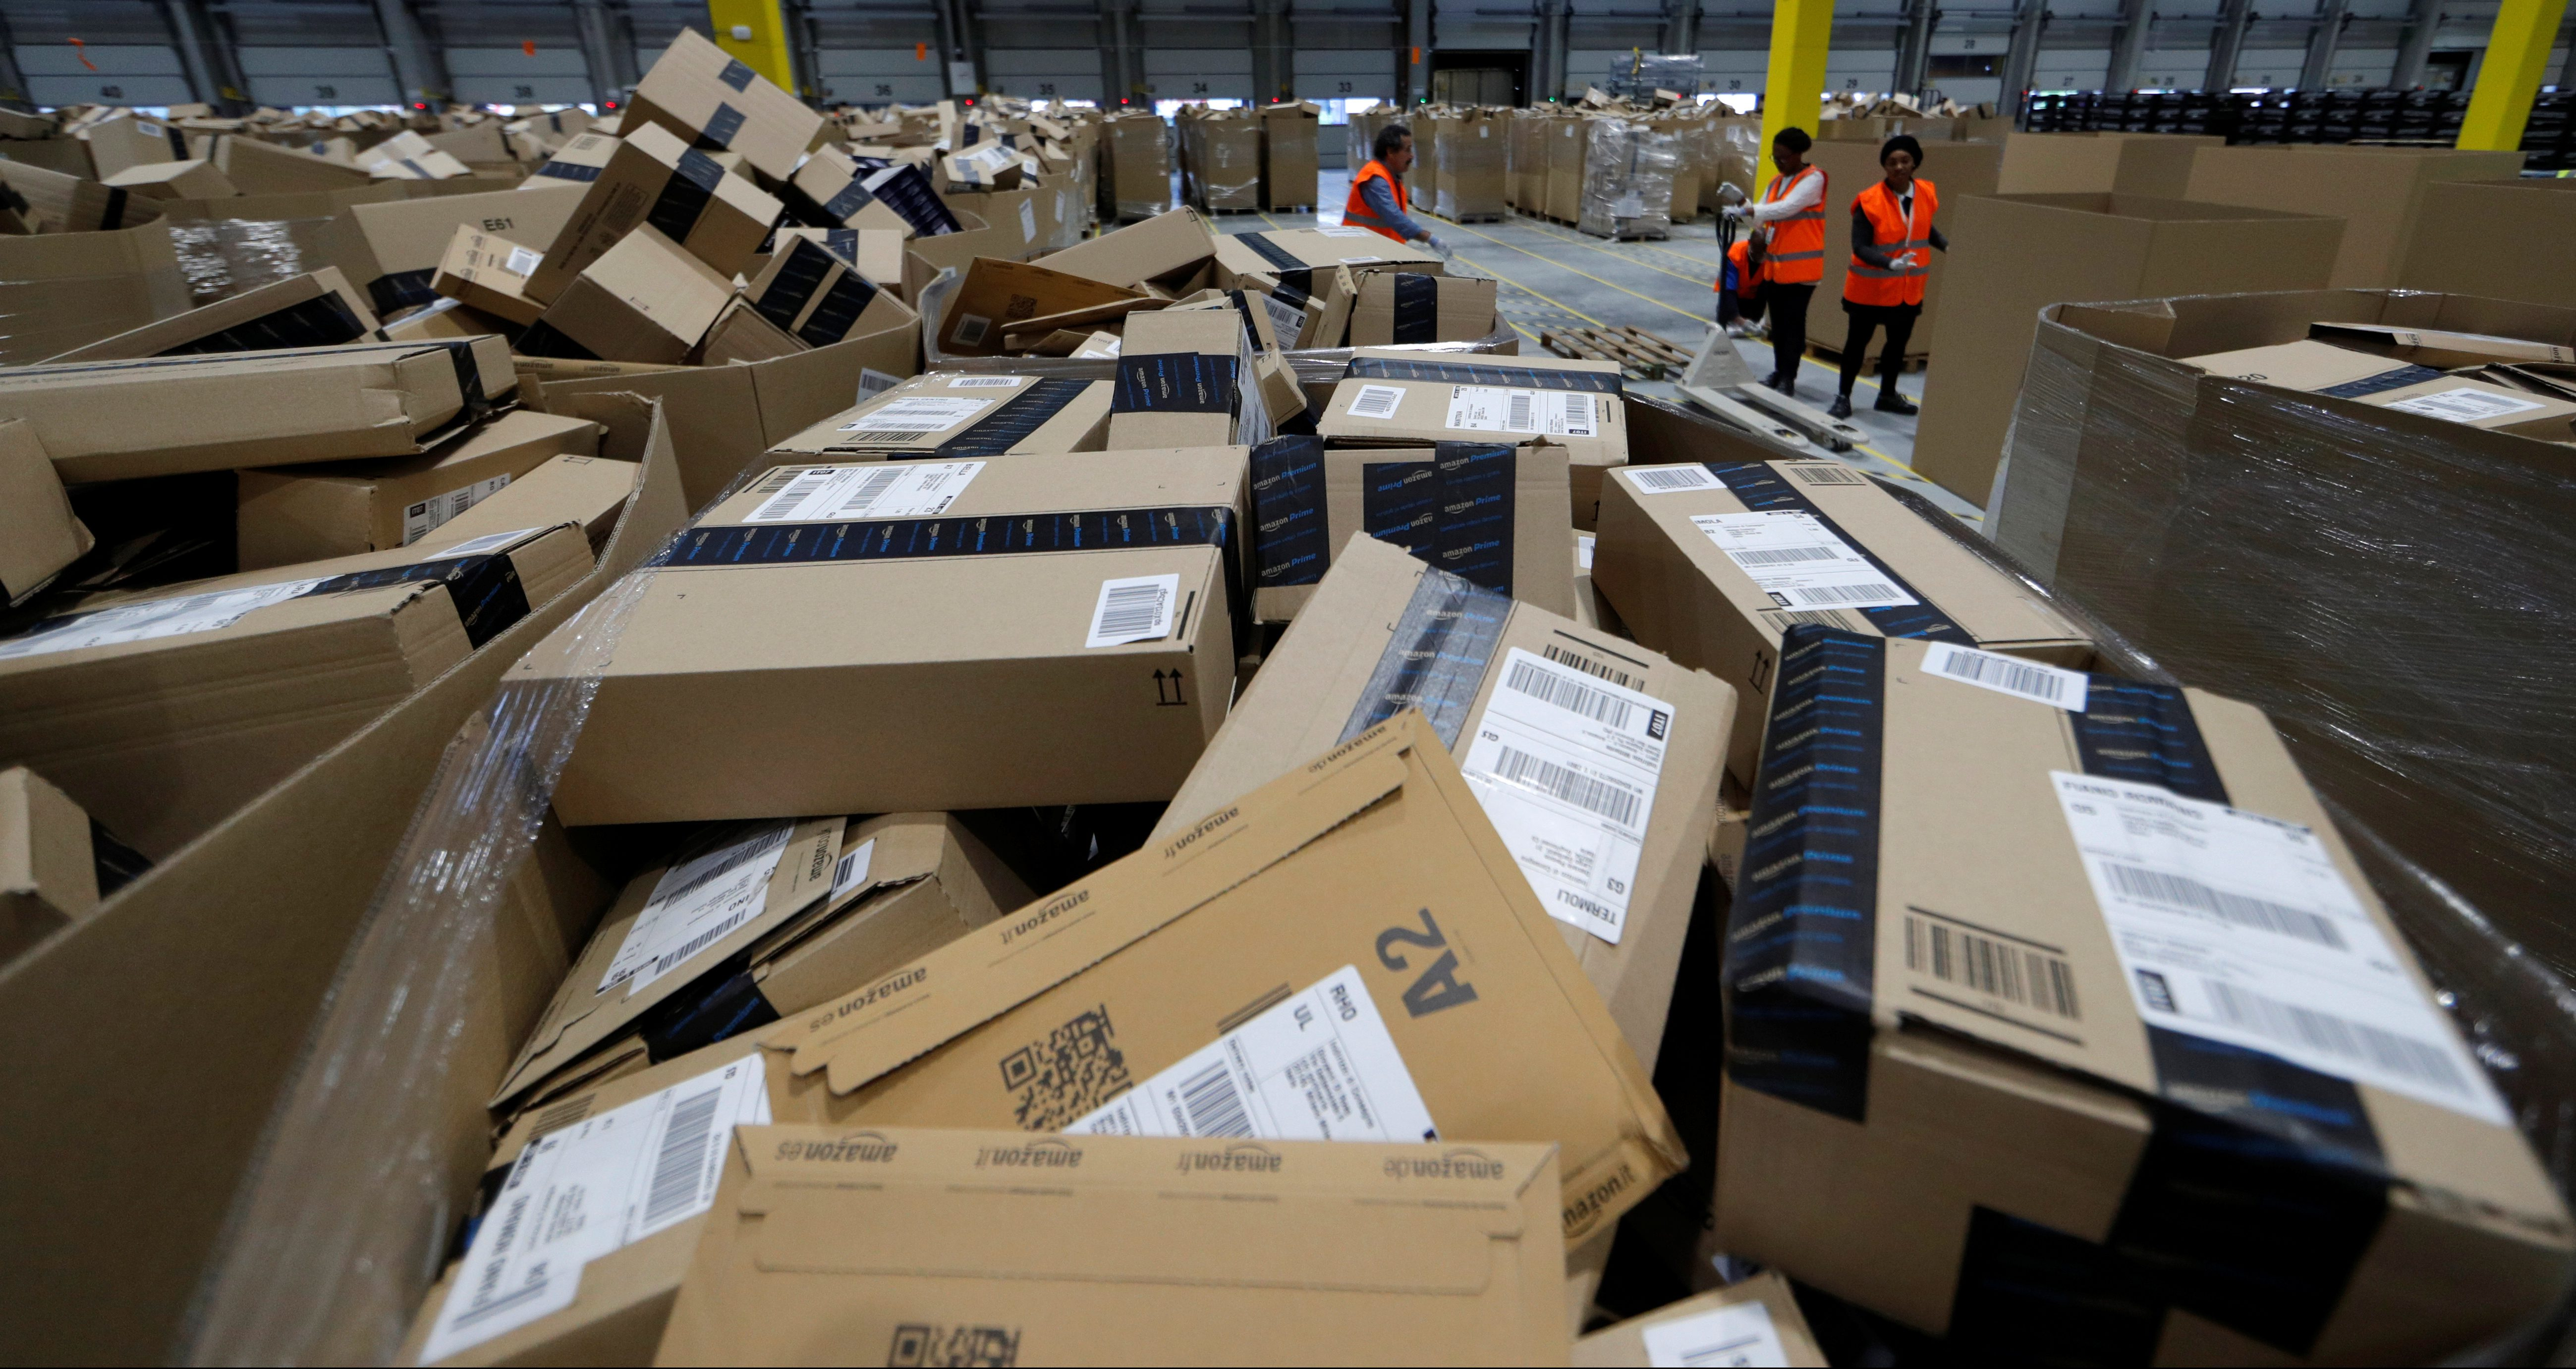 Employees sort packages at the Amazon distribution center warehouse in Saran, near Orleans, France, November 22, 2016.   REUTERS/Philippe Wojazer - RC1C5DD0FF40